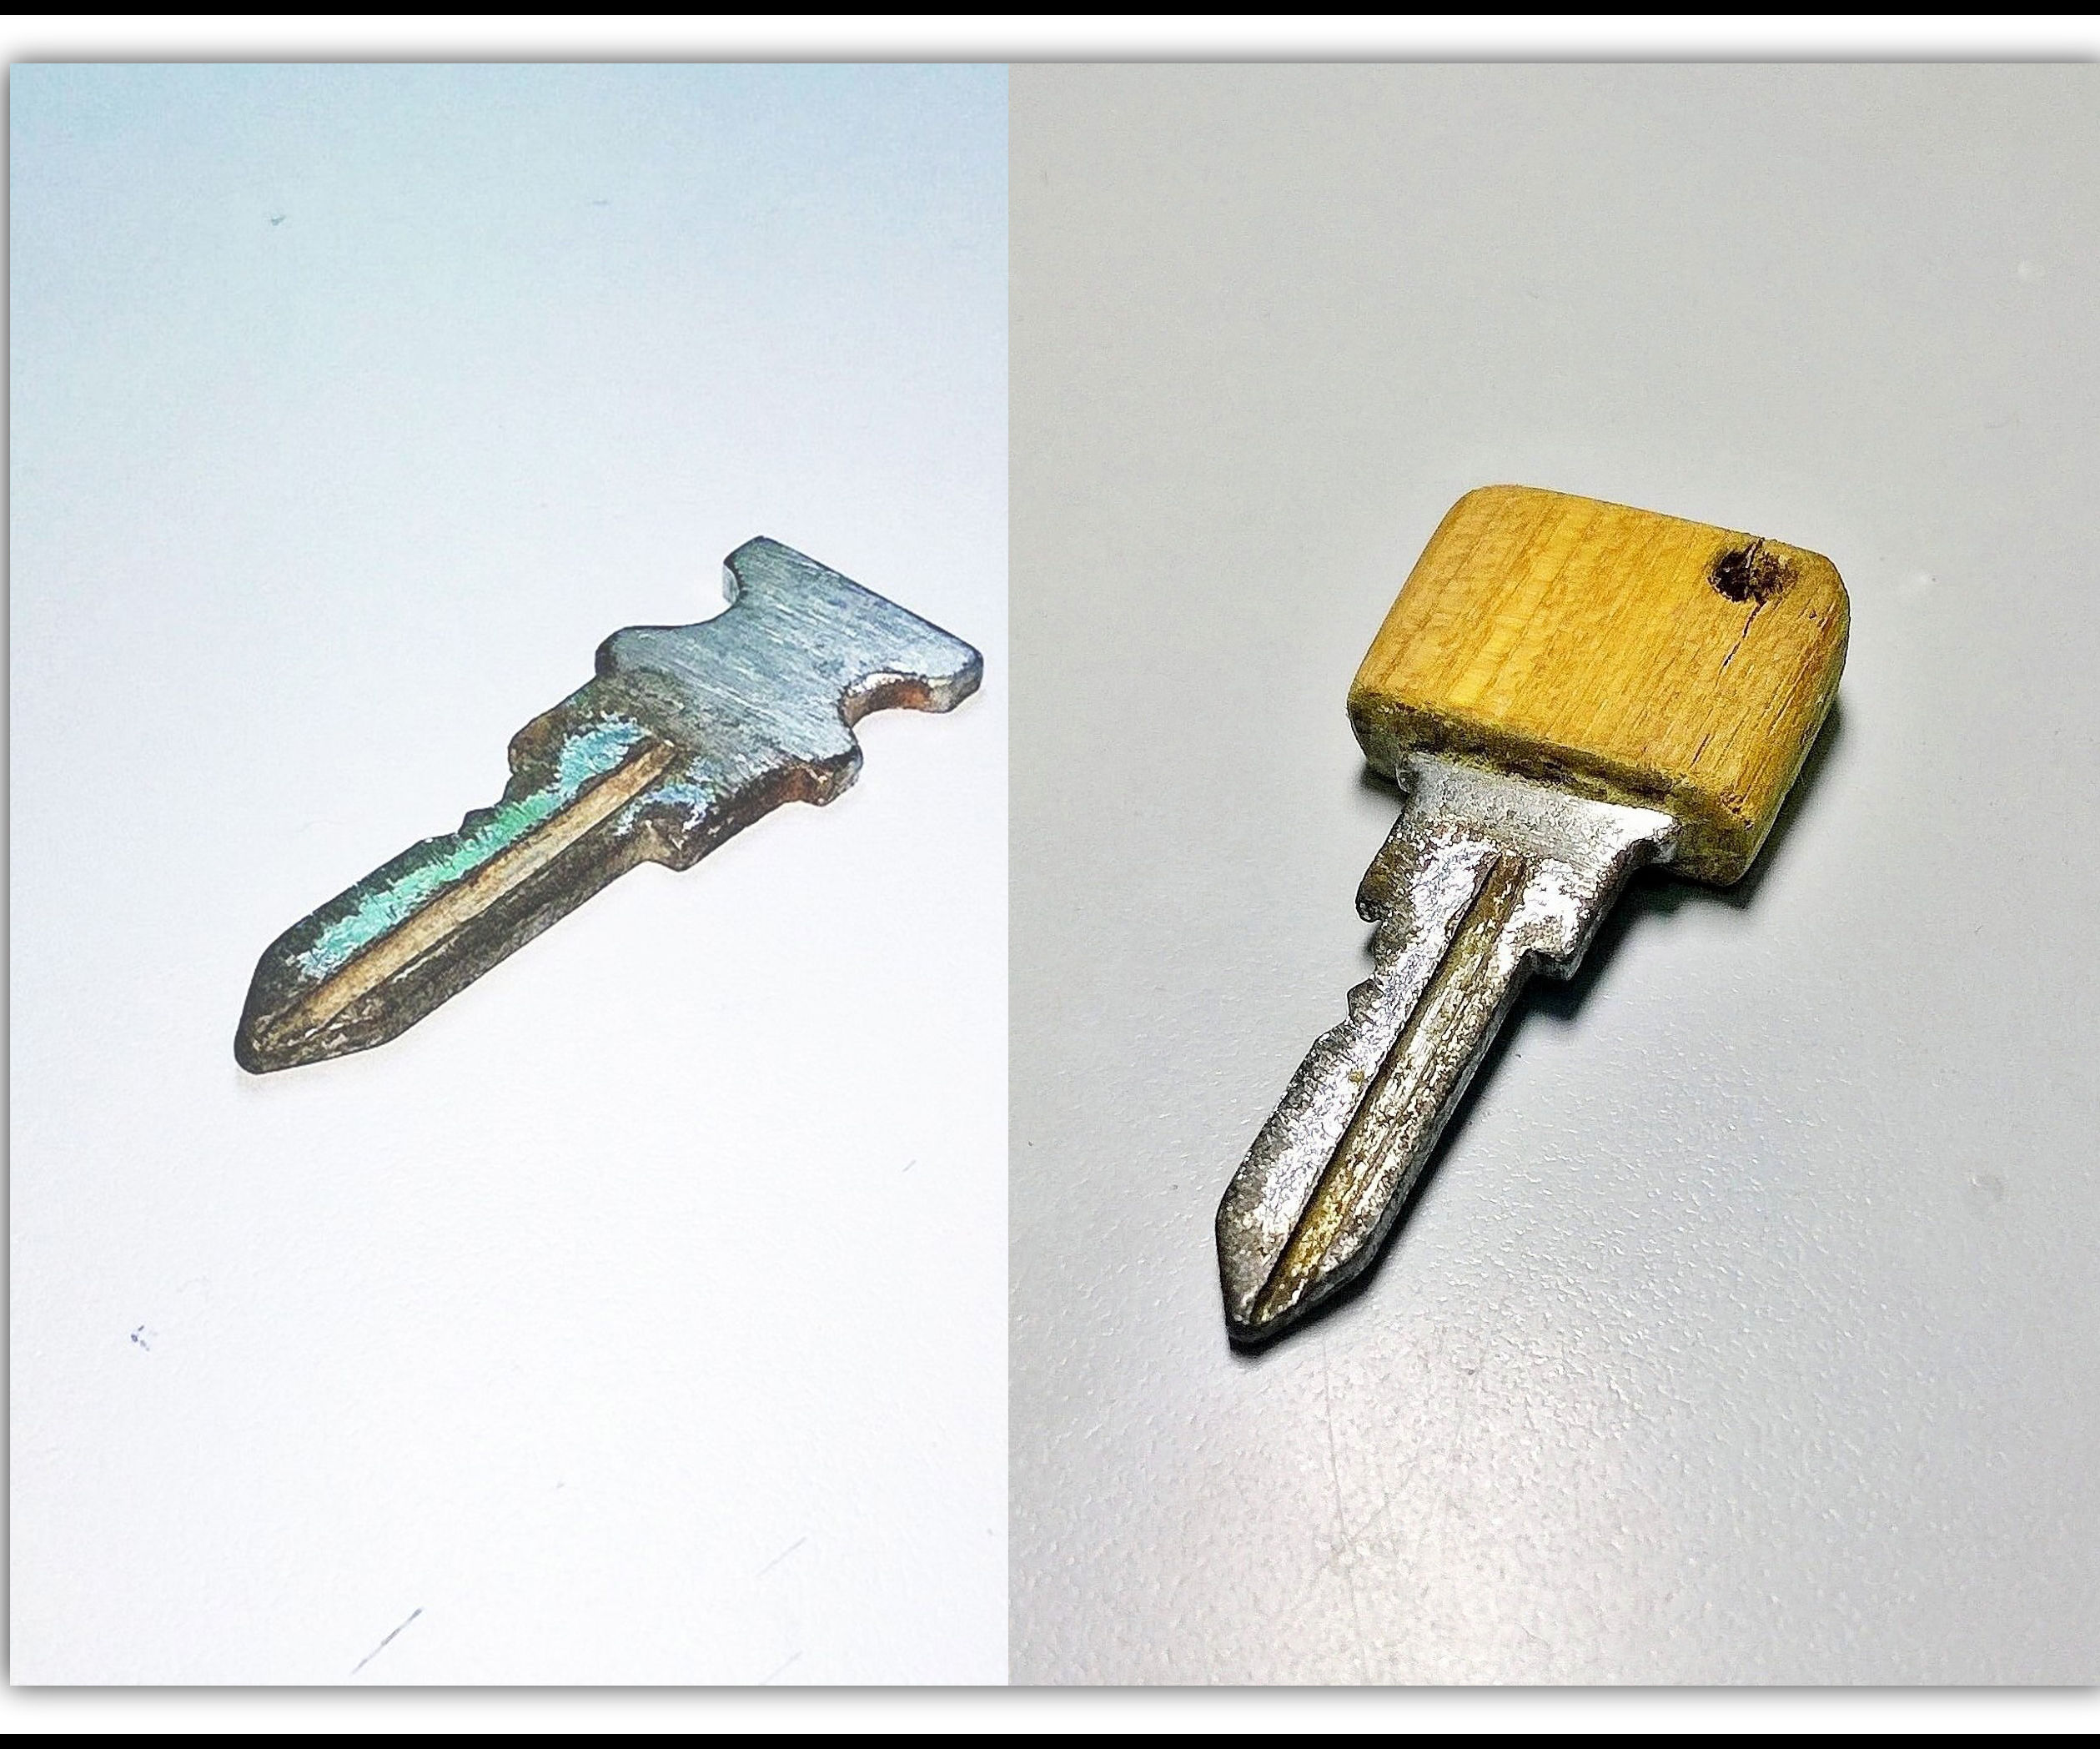 DIY Wooden Key Head